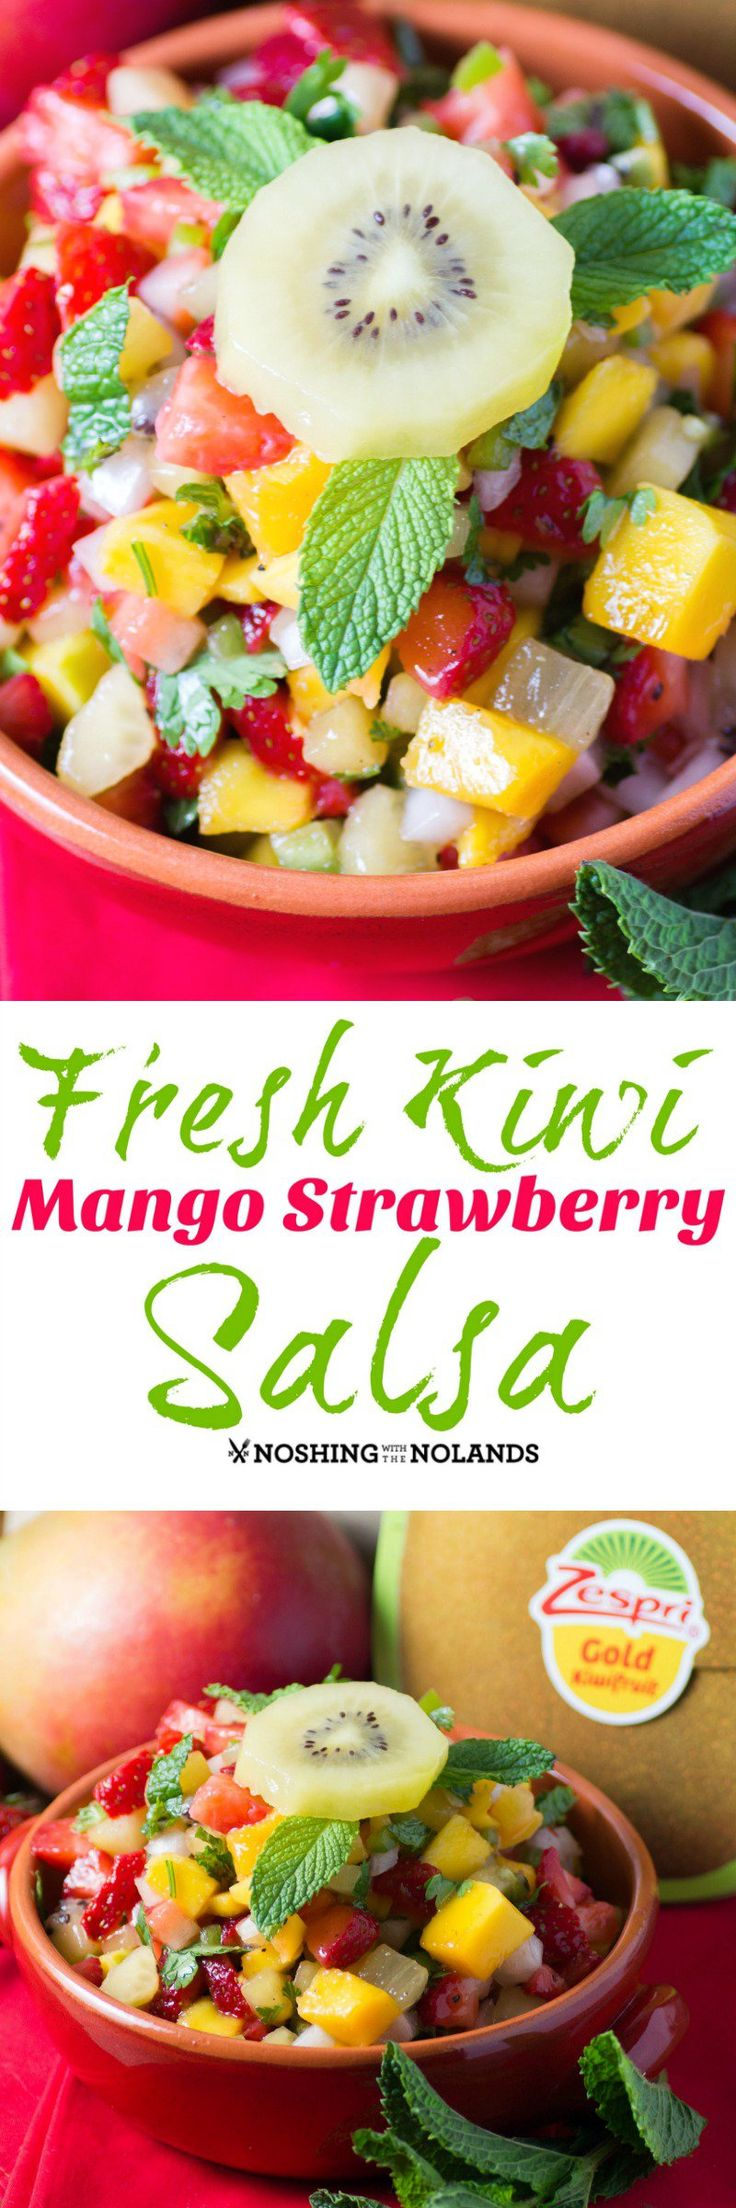 Fresh Kiwi Mango Strawberry Salsa by Noshing With The Nolands is one gorgeous summer salsa using Zespri SunGold Kiwifruit. You can serve this with nachos, fish or tacos!